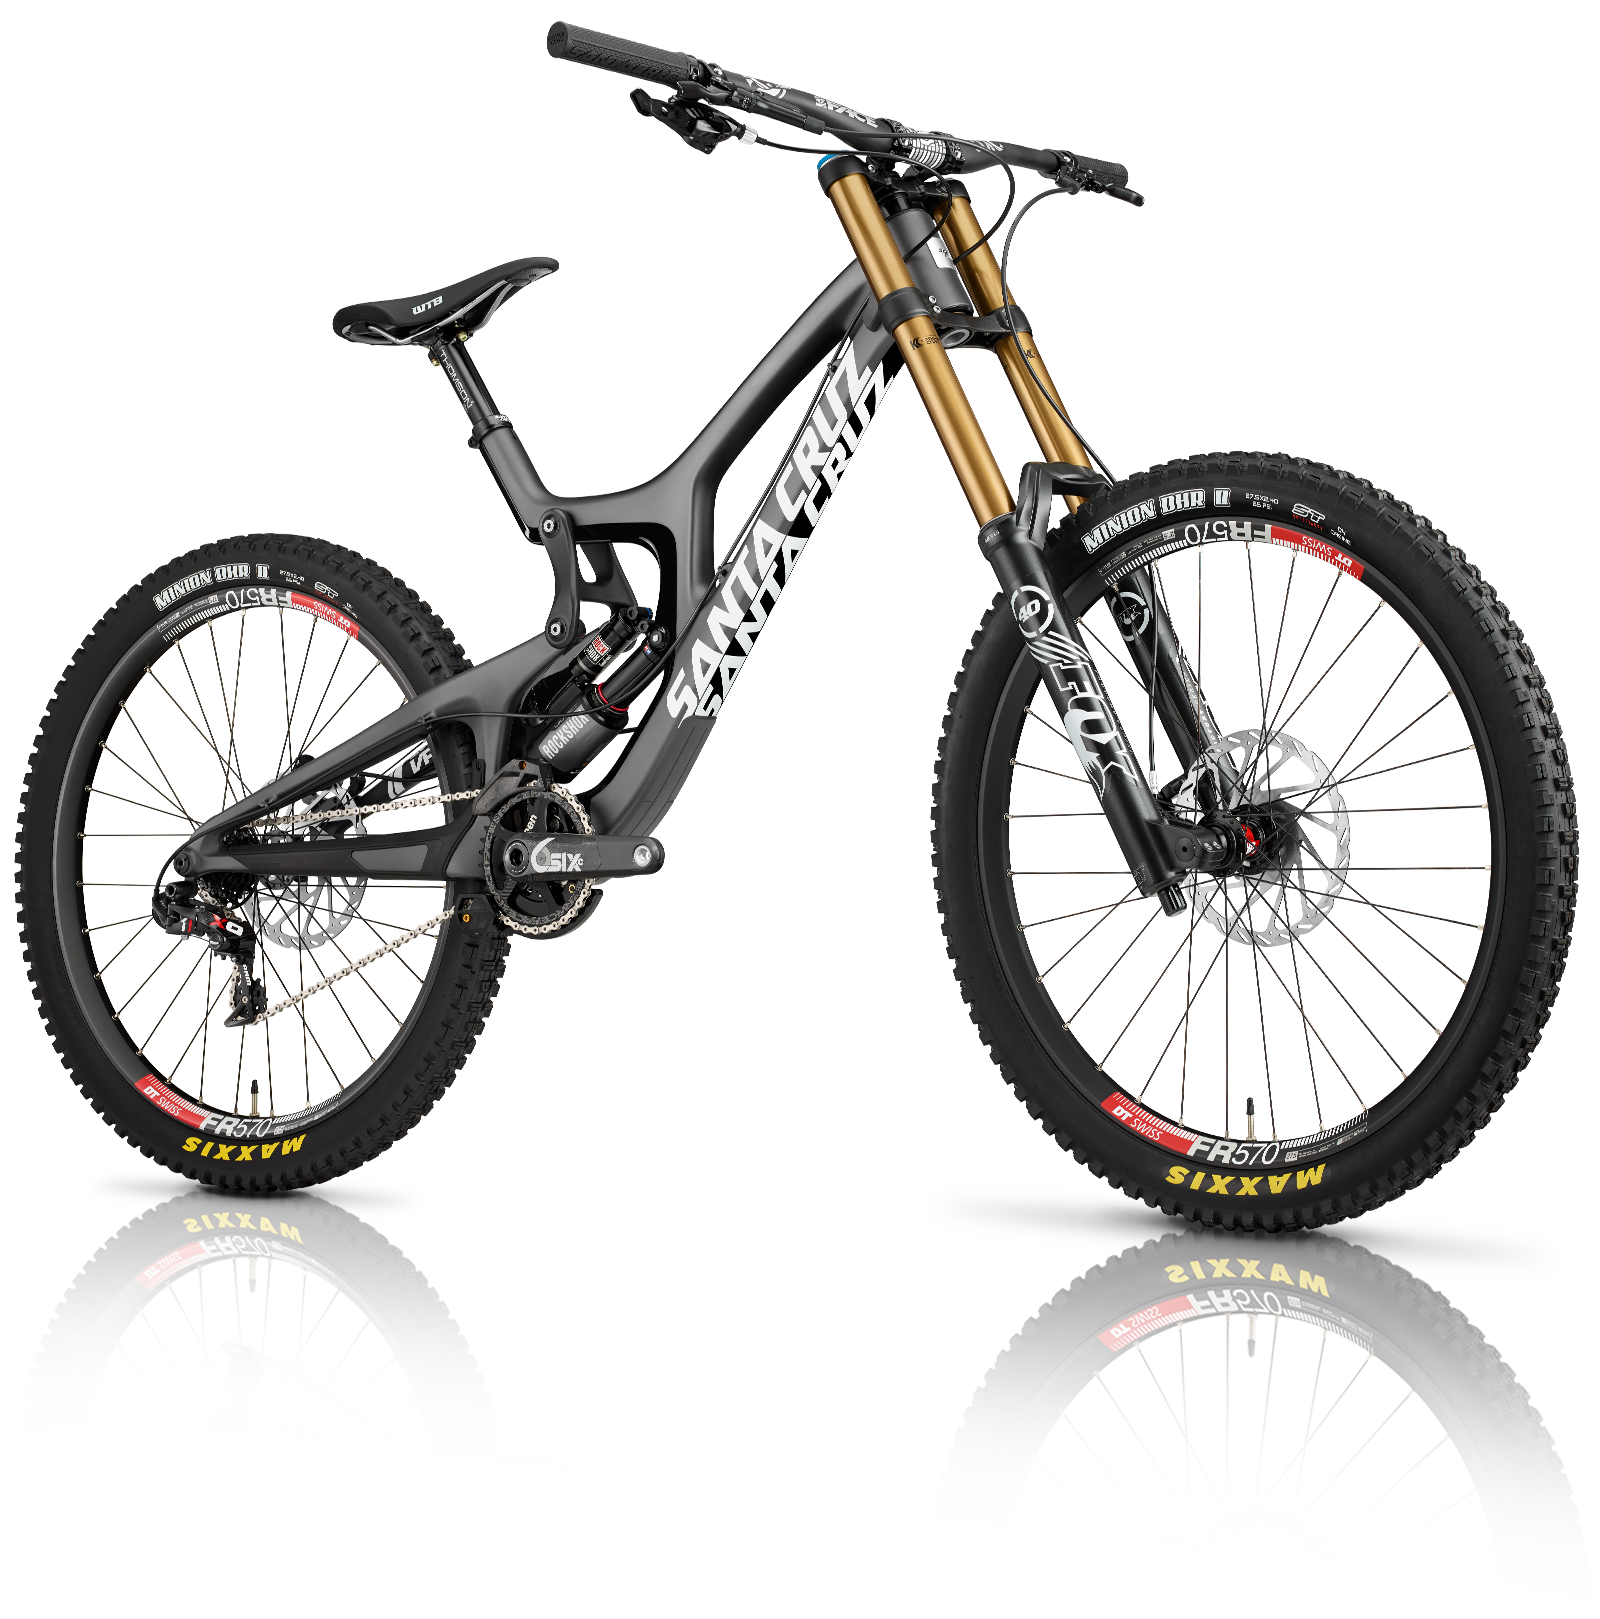 News Santa Cruz Releases All New V10 Carbon Downhill Bike In 2020